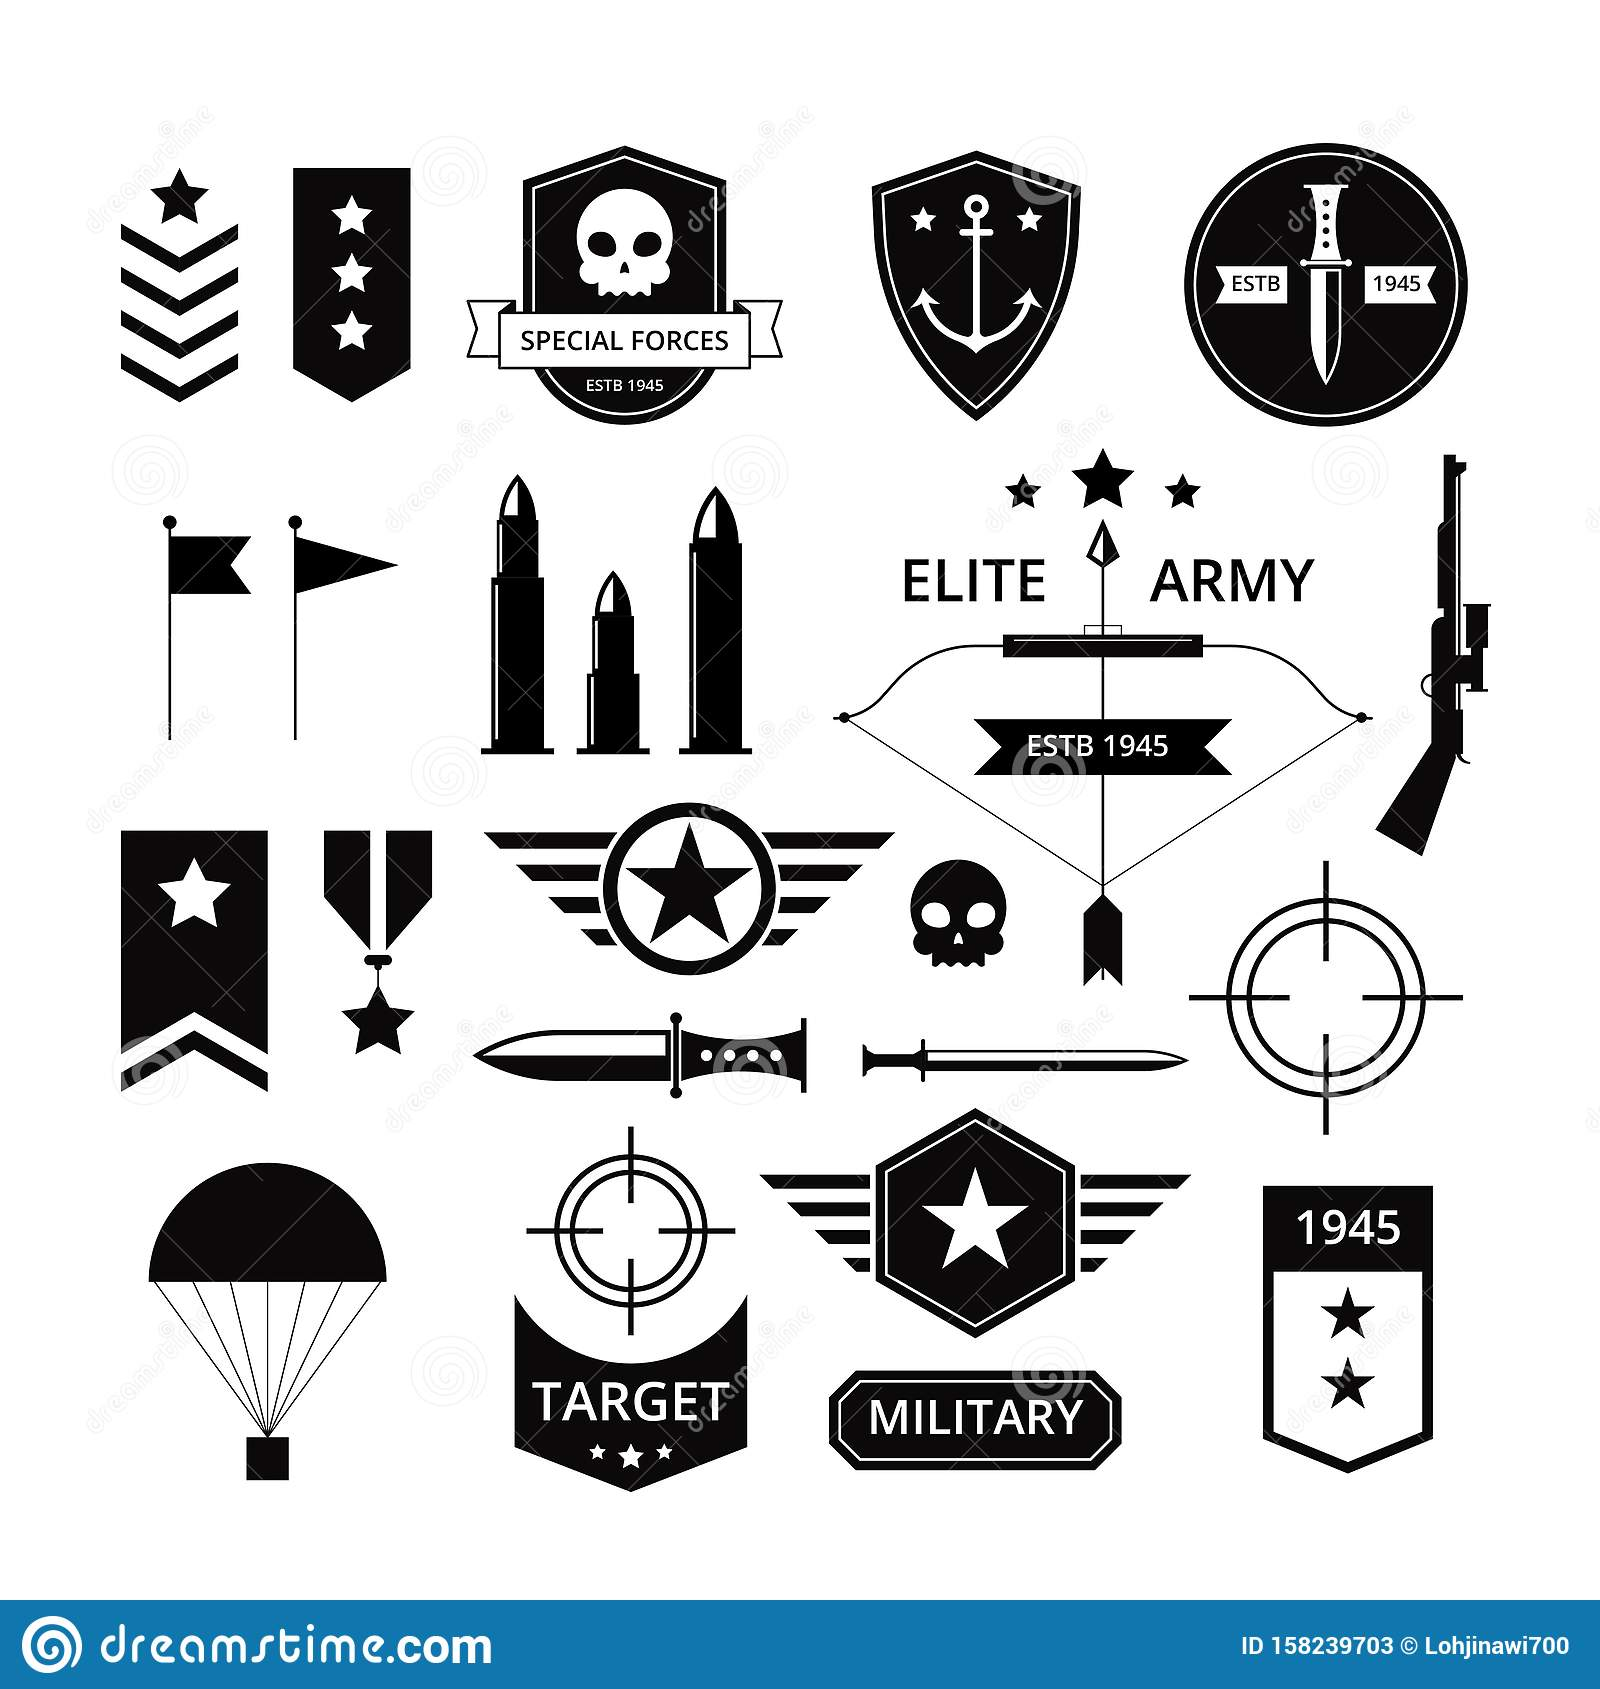 Military Badges Stock Illustrations – 1,042 Military Badges Stock  Illustrations, Vectors & Clipart - Dreamstime